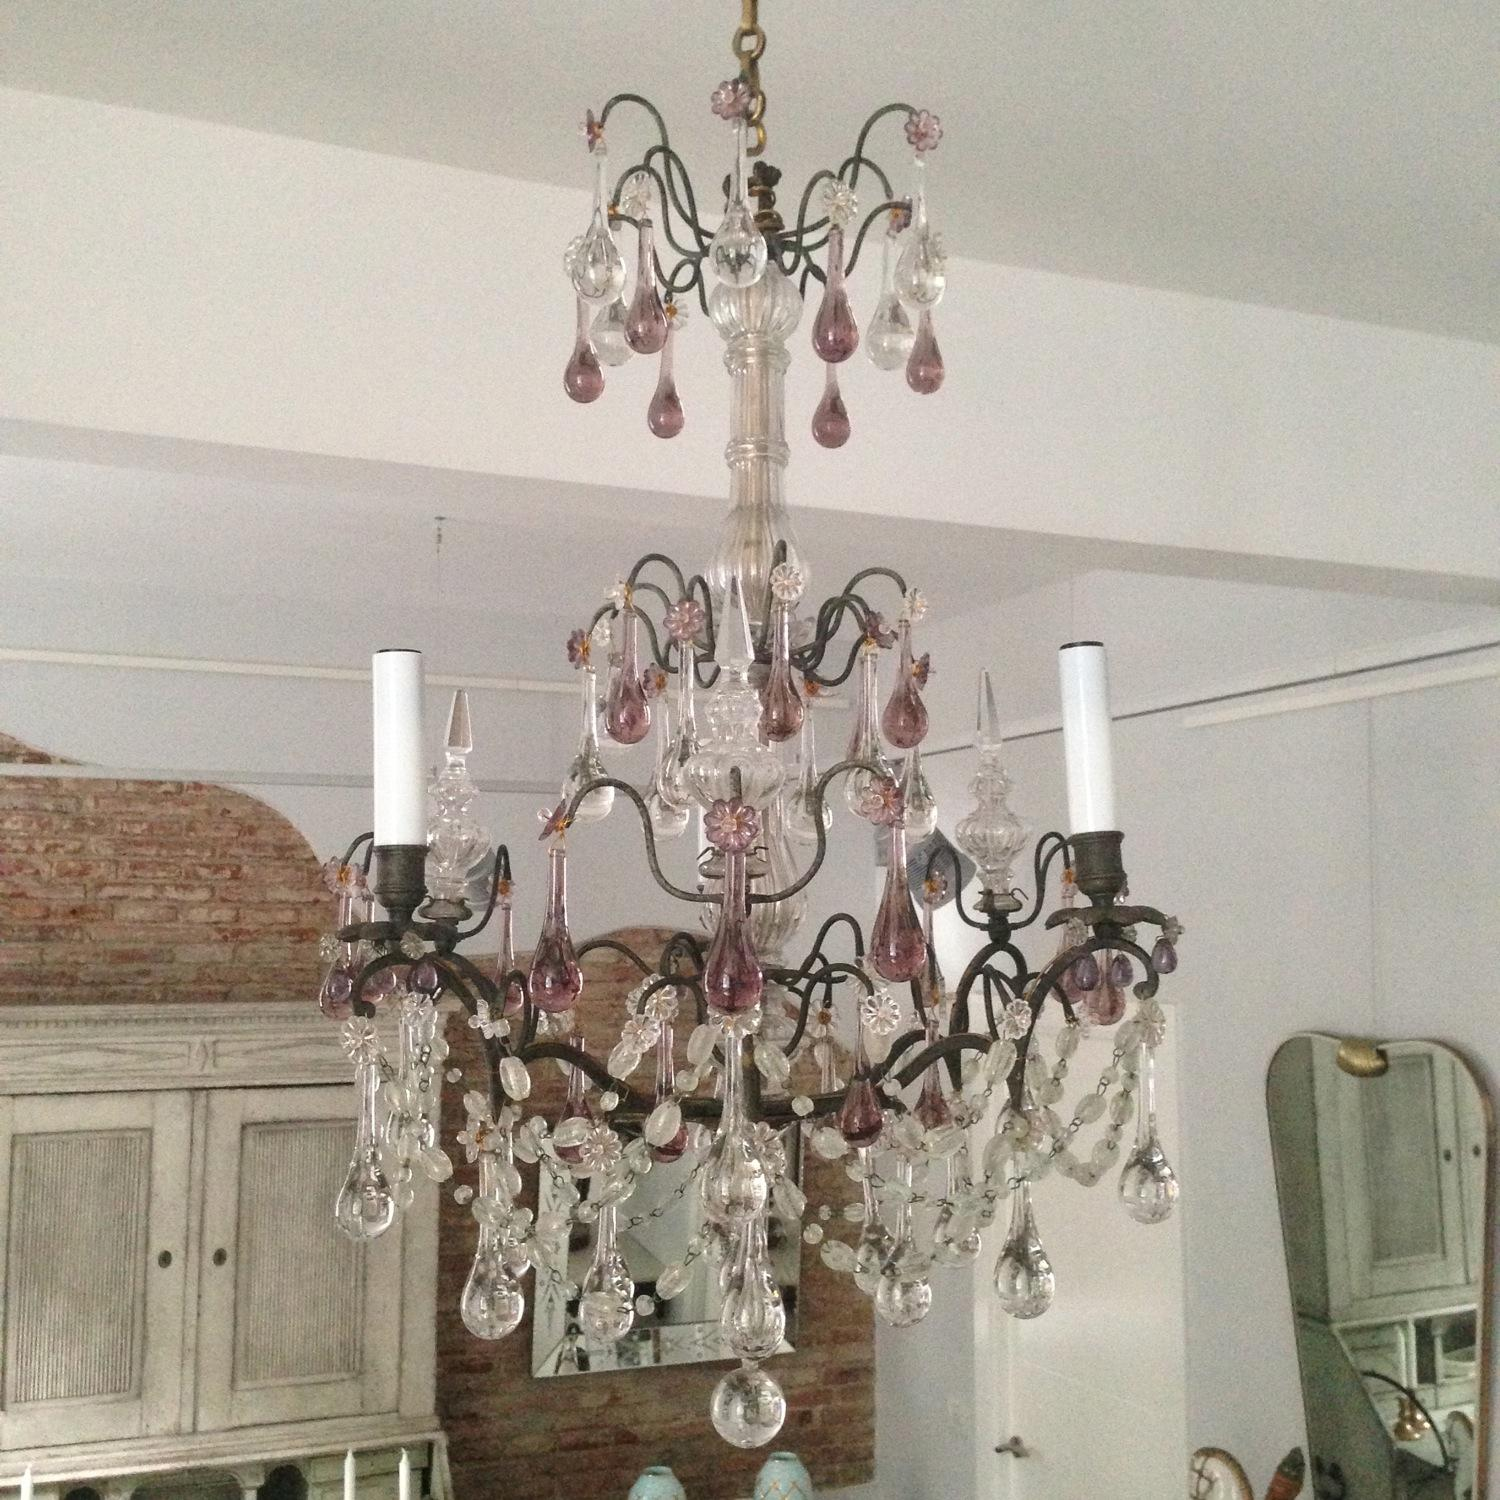 Antique French Baccarat Chandelier In Lighting